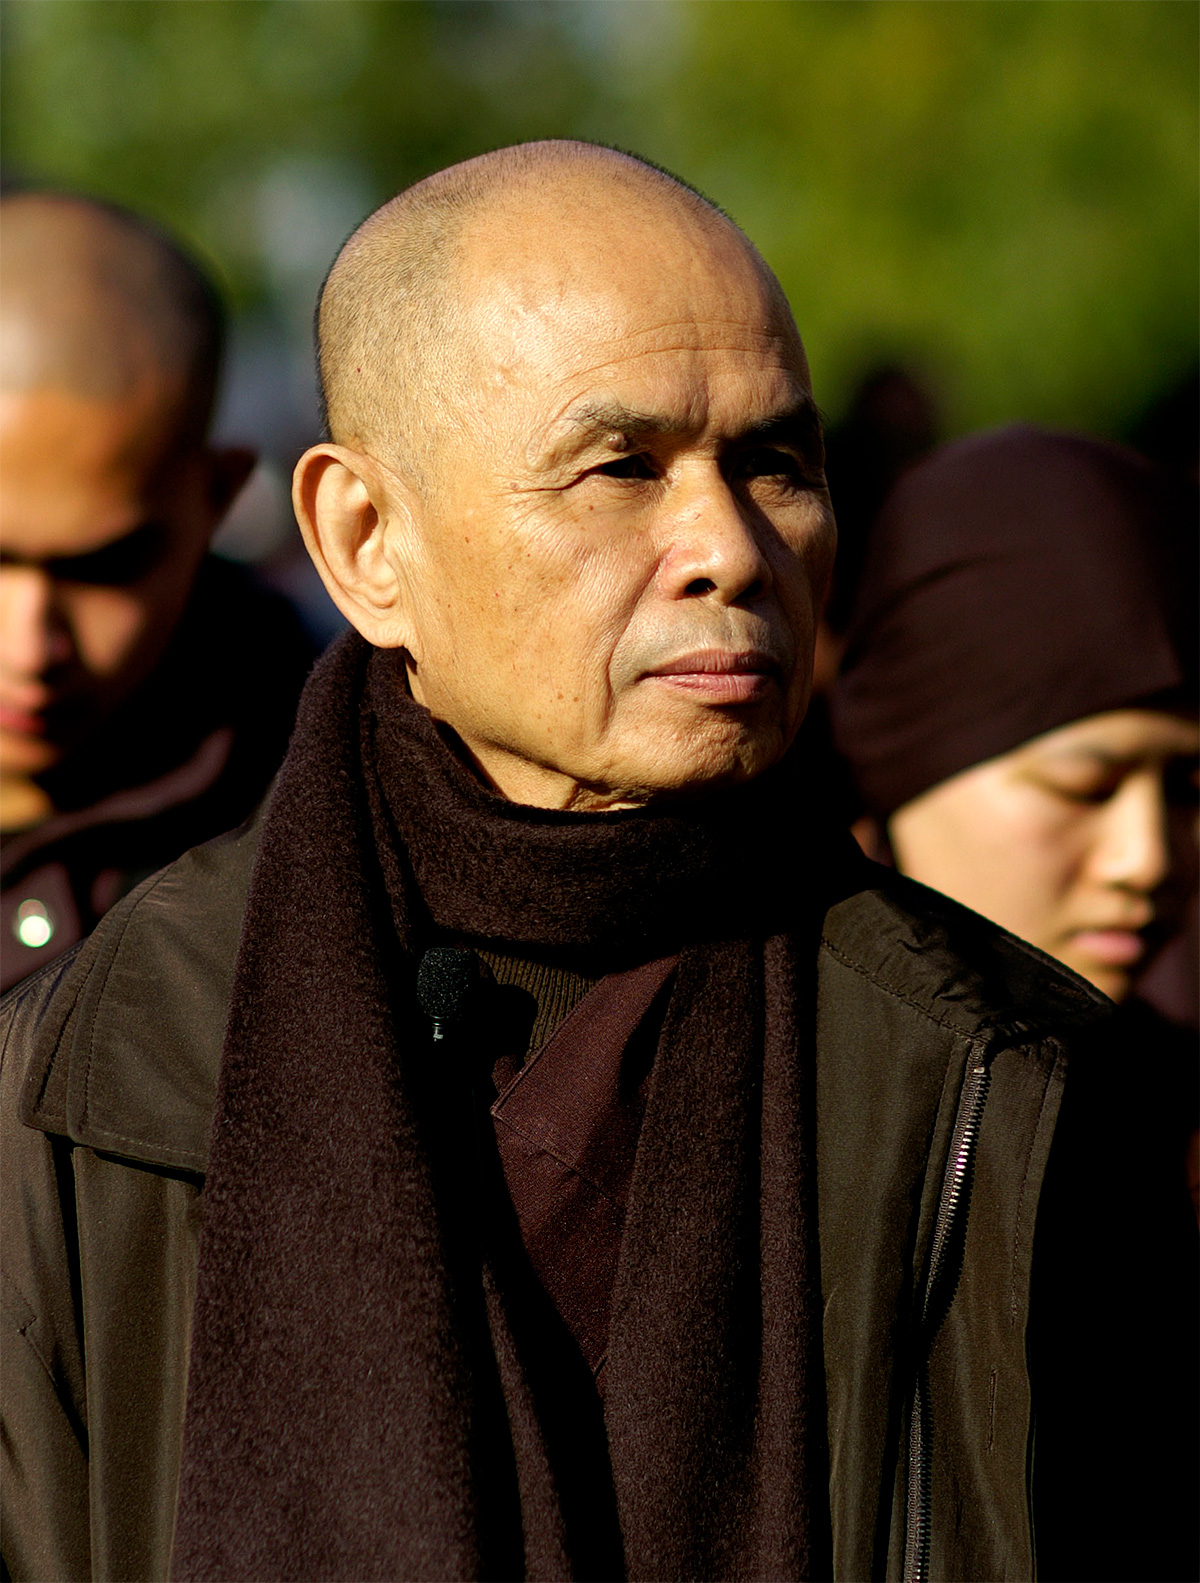 Thich-Nhat Hanh